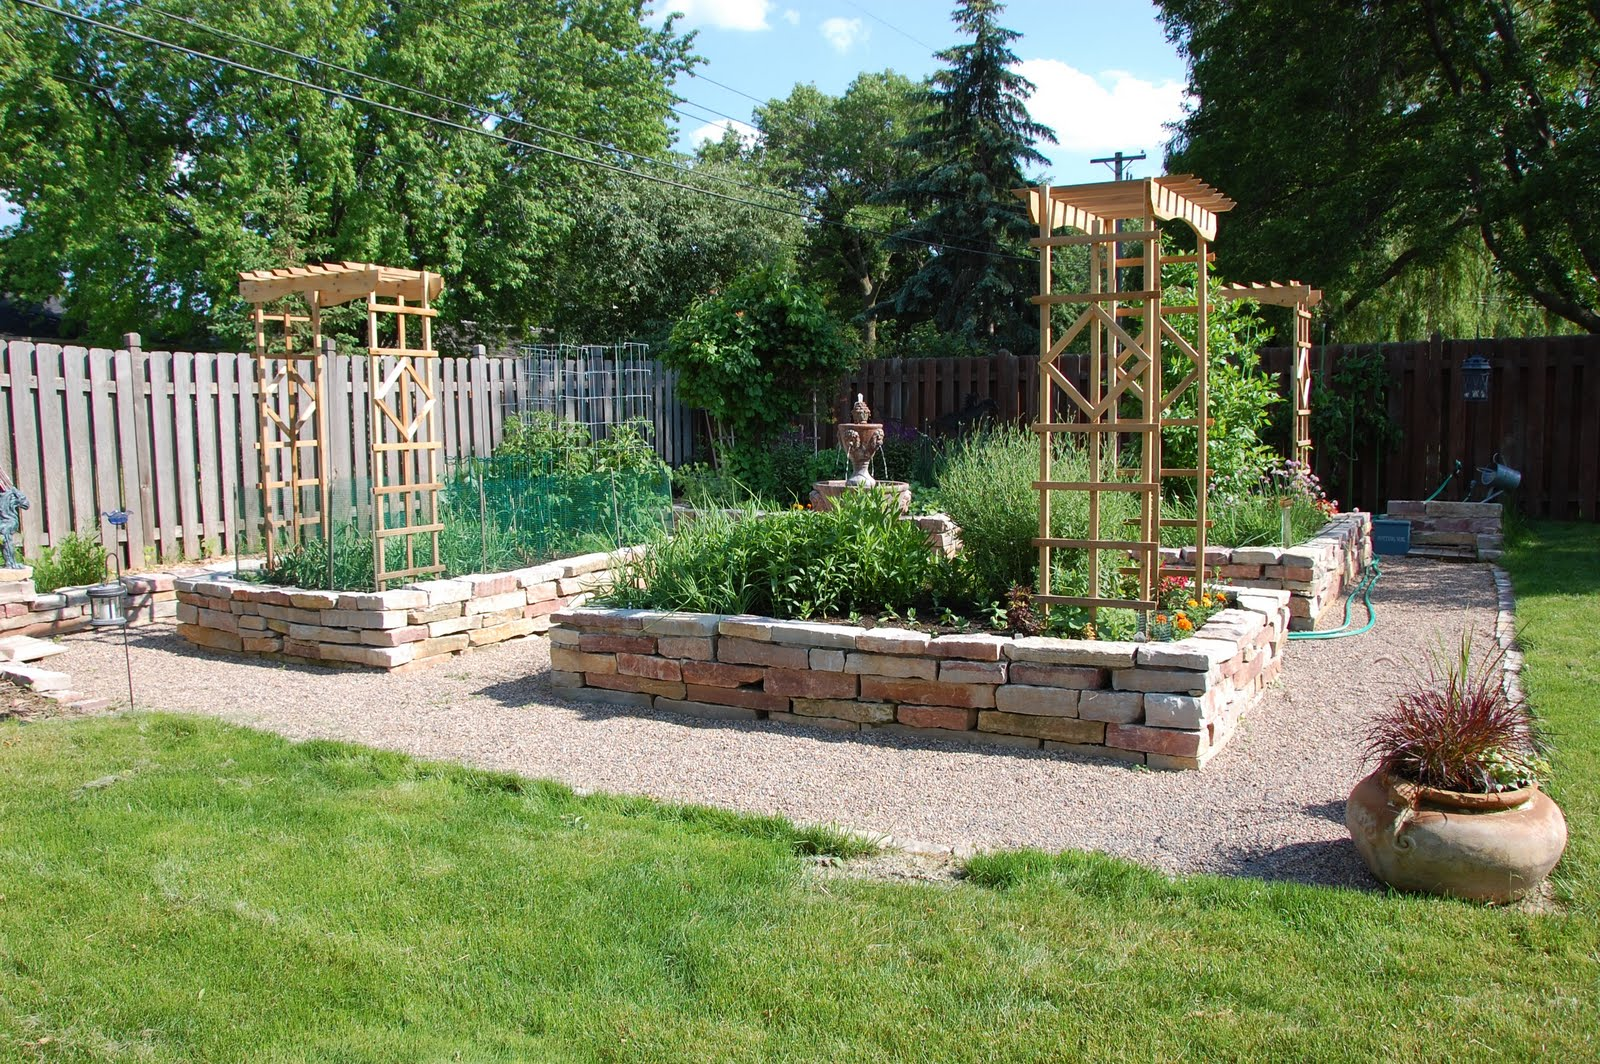 Vignette Design Design Bucket List 3 Design A Beautiful Raised Bed Vegetab